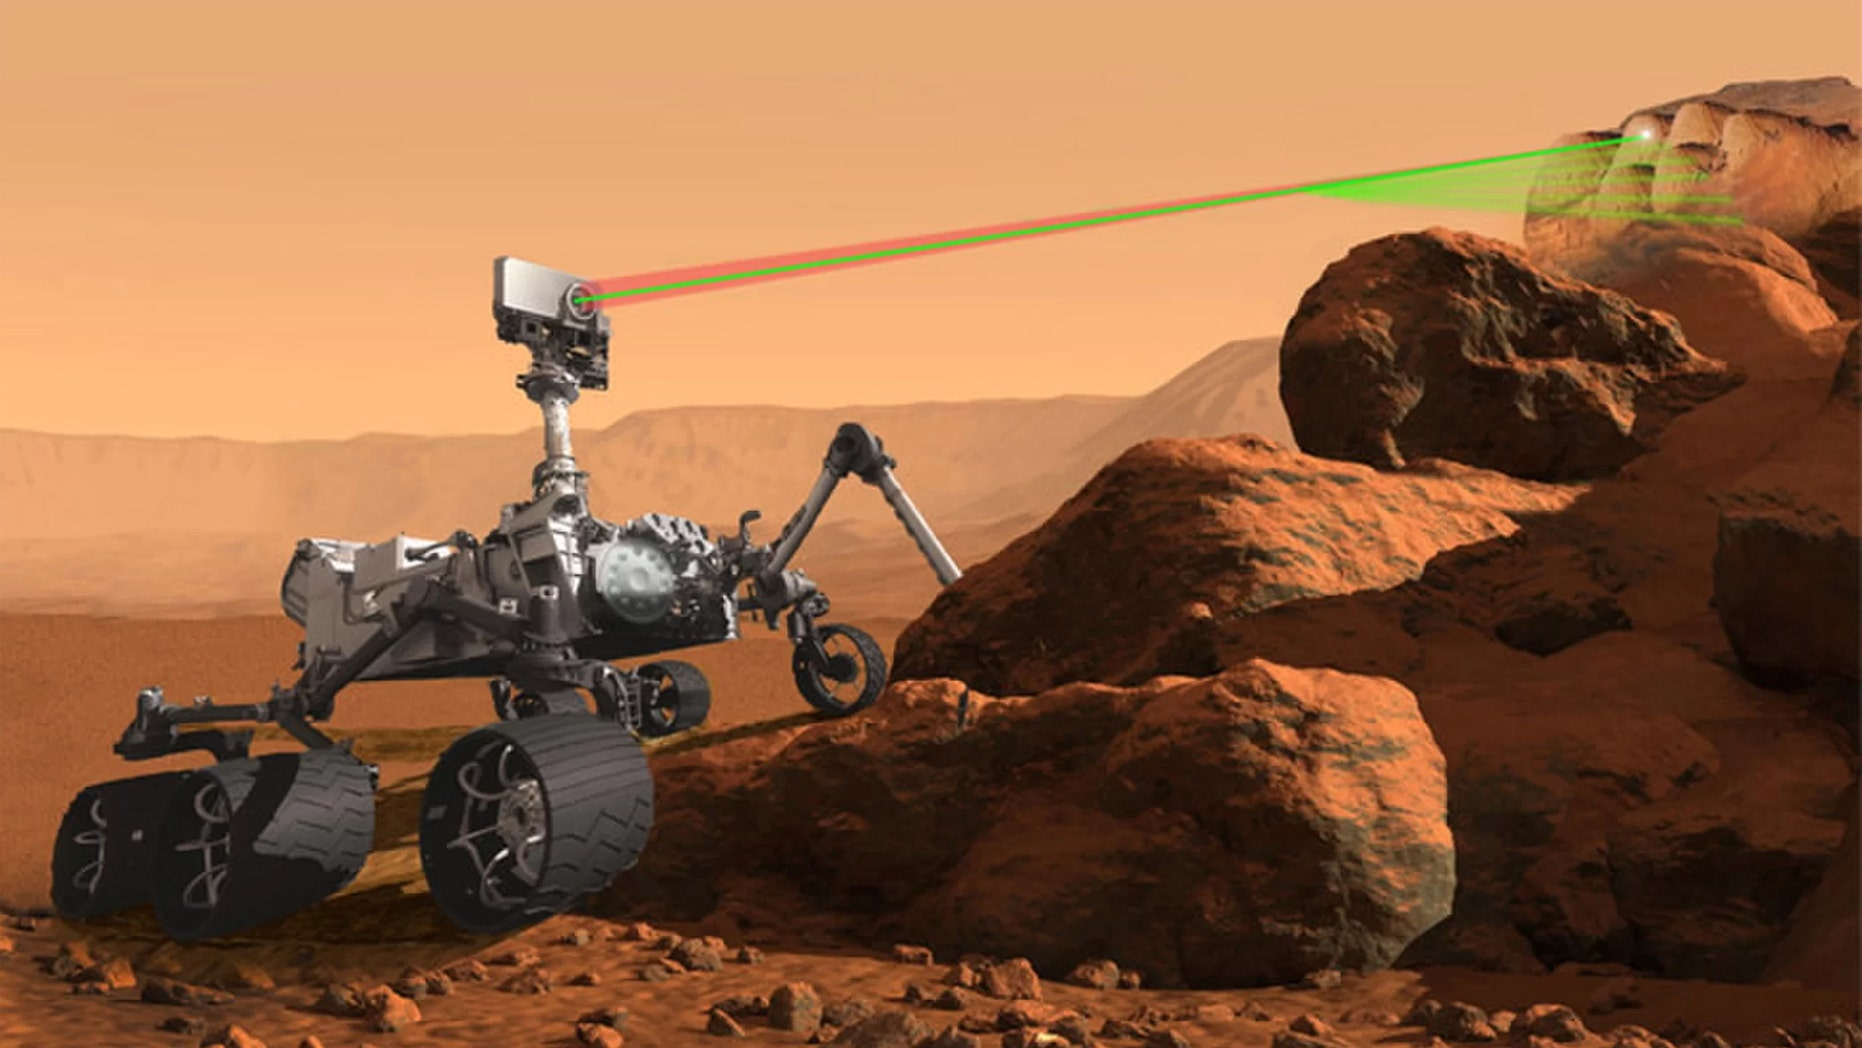 NASA's Mars 2020 rover is designed to be able to identify potential traces of ancient life on Mars. (Credit: NASA)